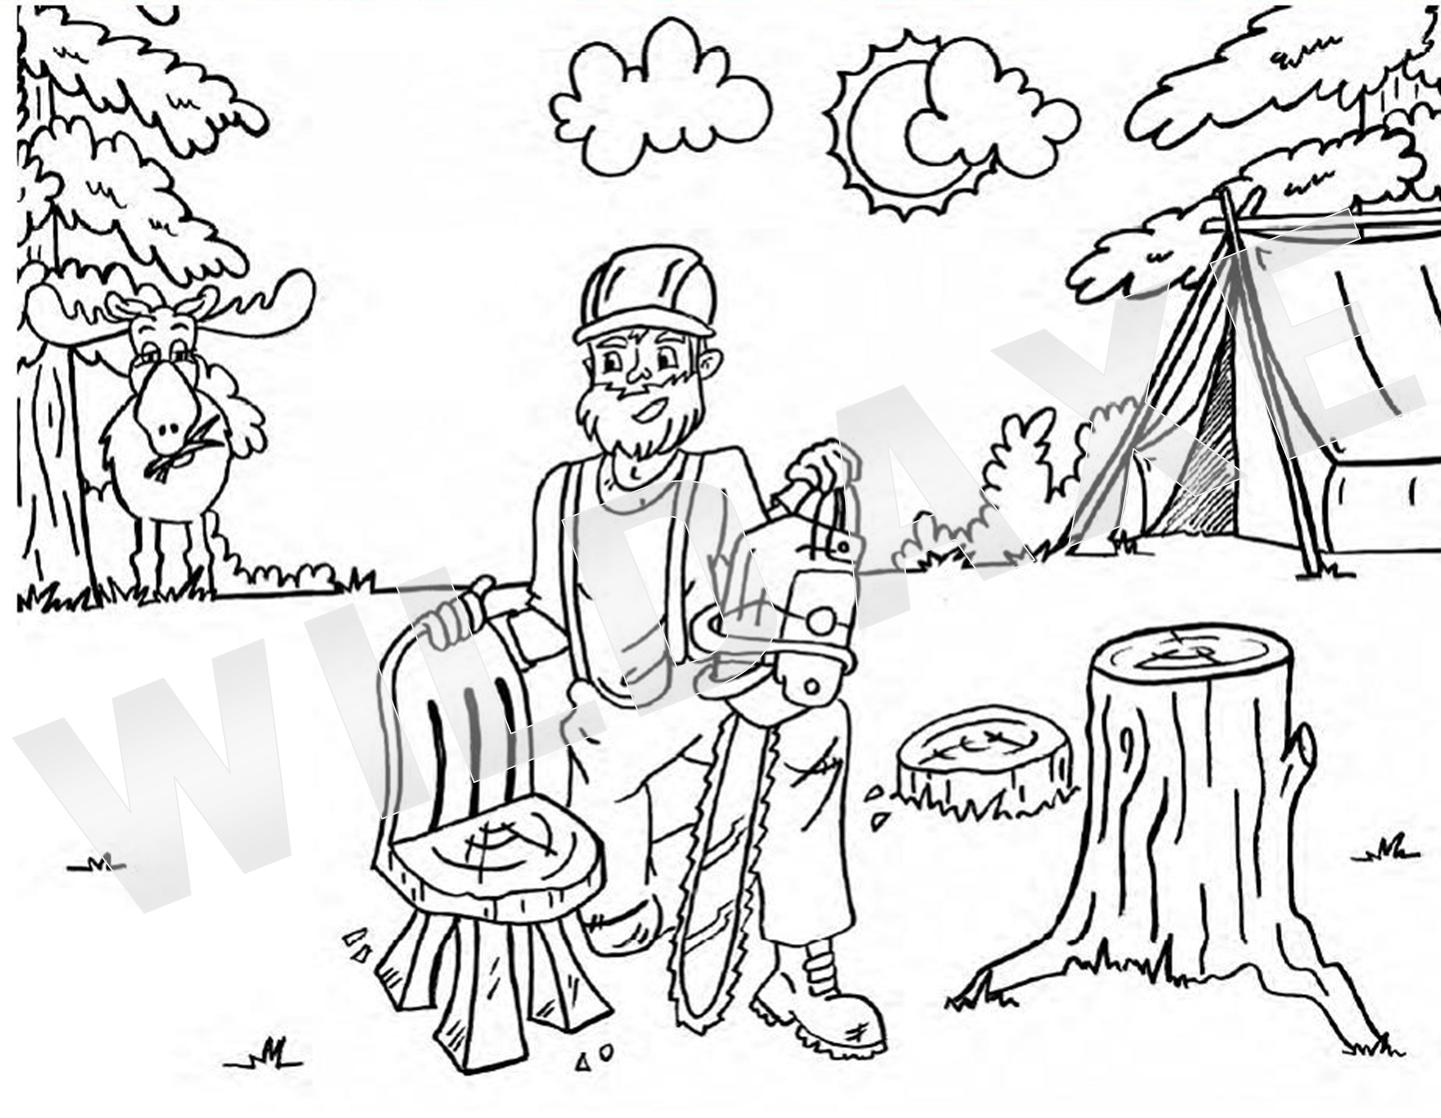 Colouring book - Lumberjack Colouring Book